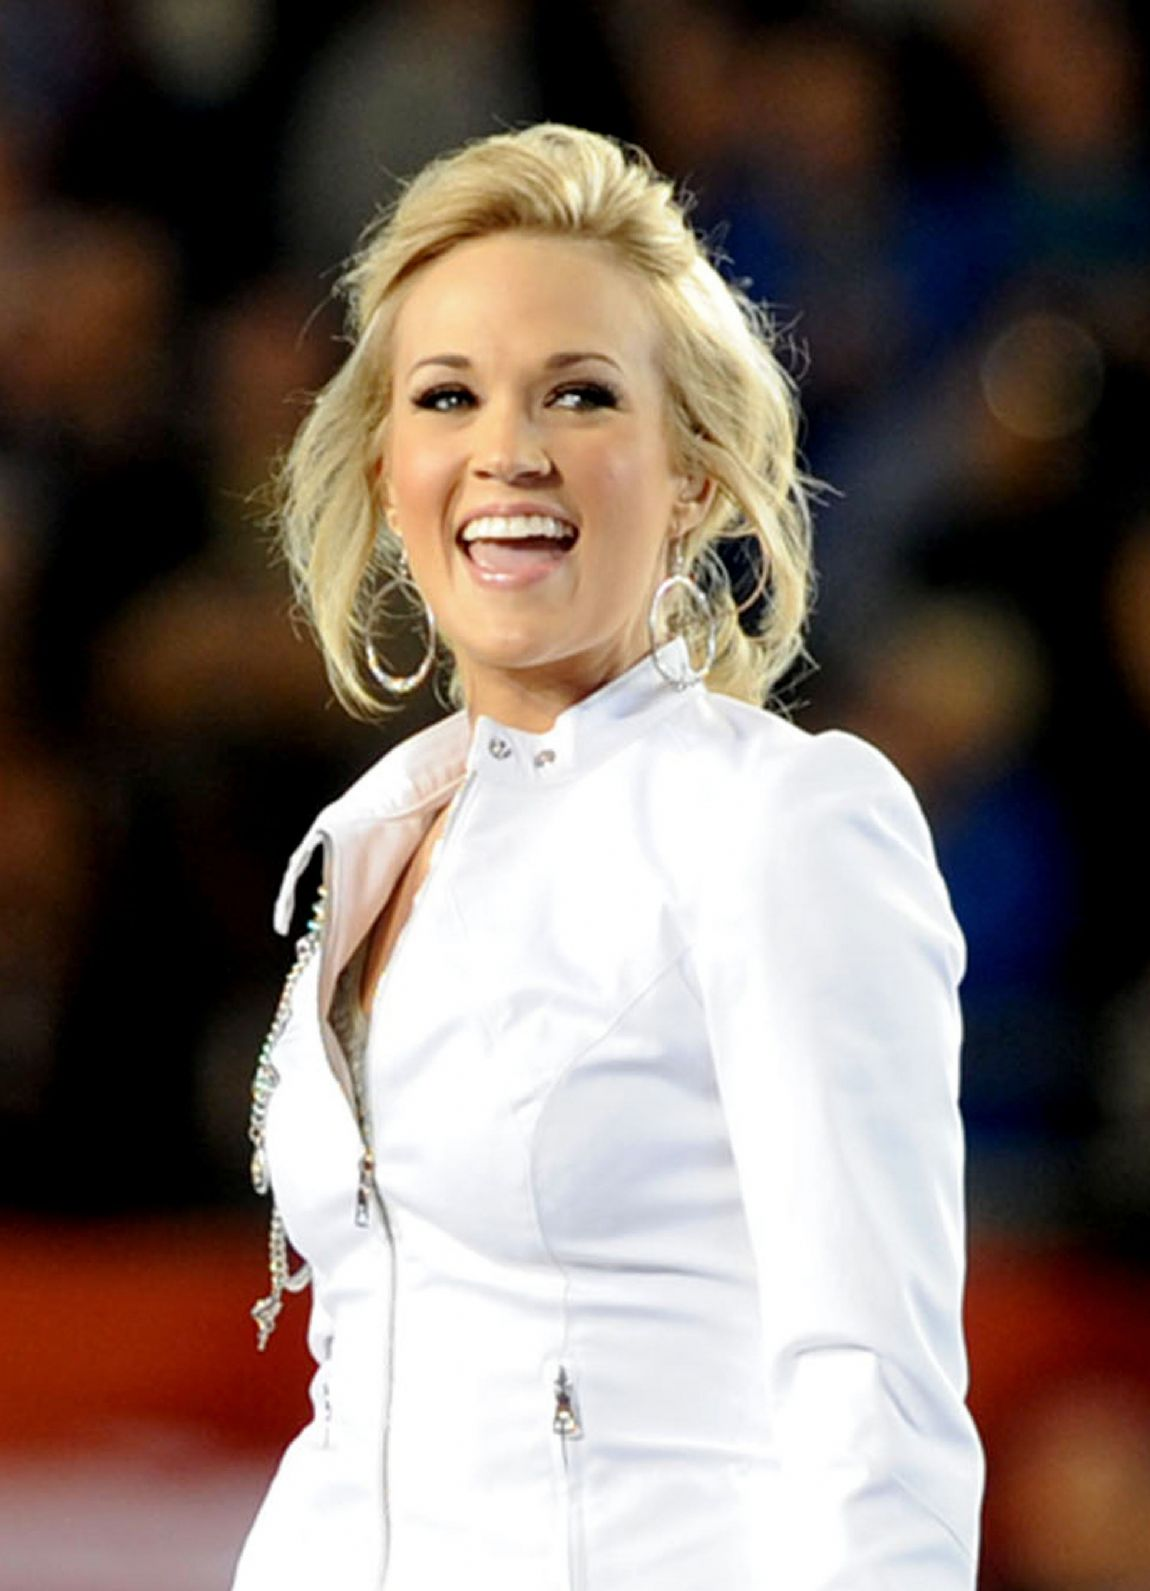 Carrie Underwood image by Beata | Carrie underwood